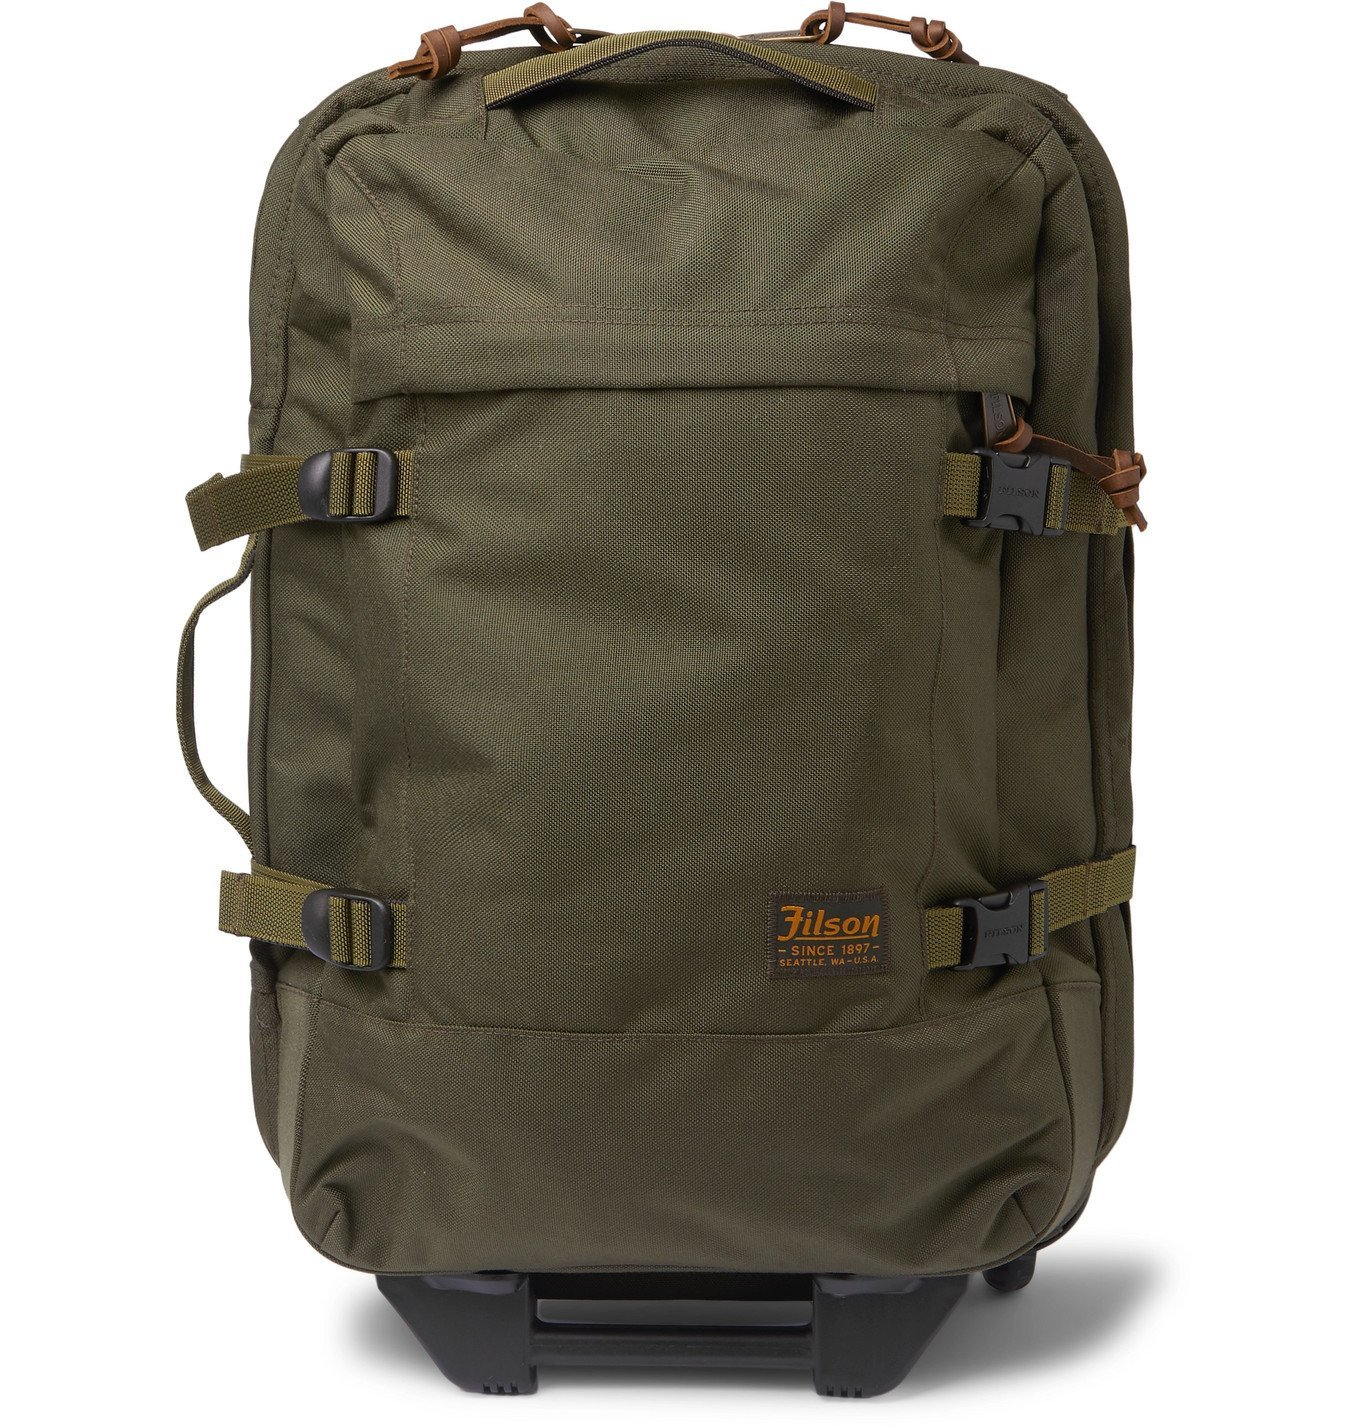 Filson - Dryden Leather-Trimmed Camouflage-Print CORDURA Carry-On Suitcase - Green